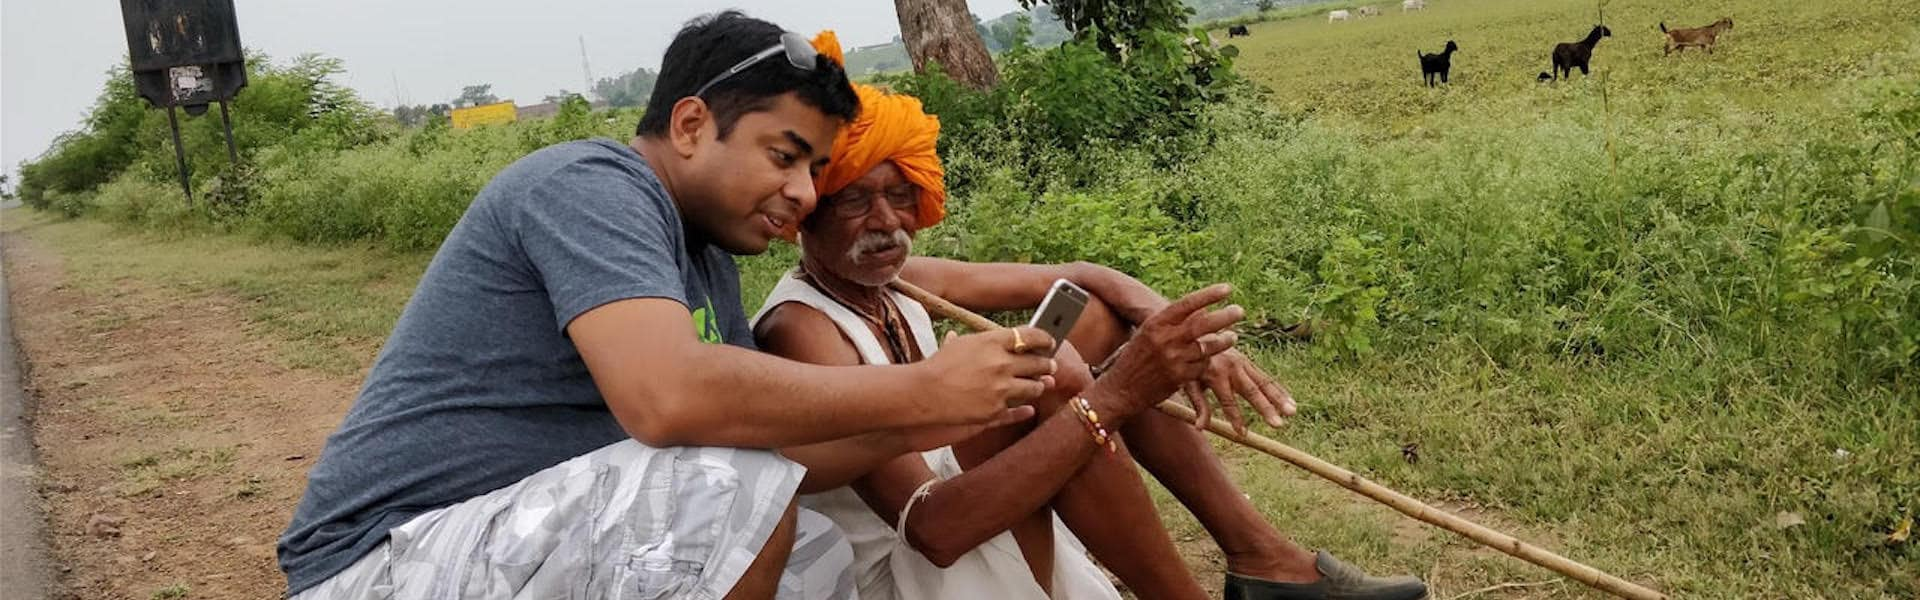 Ruchit G Garg of Harvesting is advising a farmer using his smartphone.